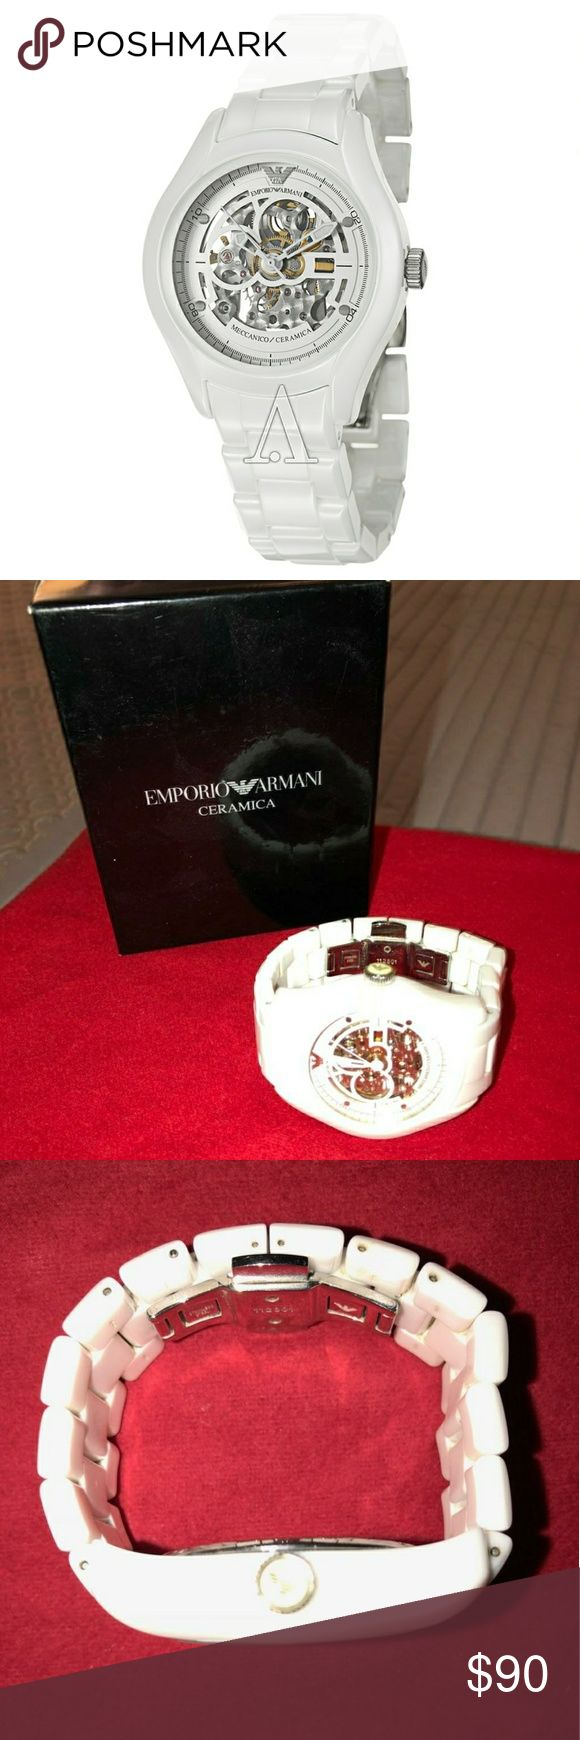 Emporio Armani ceramic watch Emporio Armani unisex ceramic watch. Has a small scratch on the face, it's not noticeable unless you really look. Needs battery. Comes with box and extra links for sizing. Emporio Armani Accessories Watches